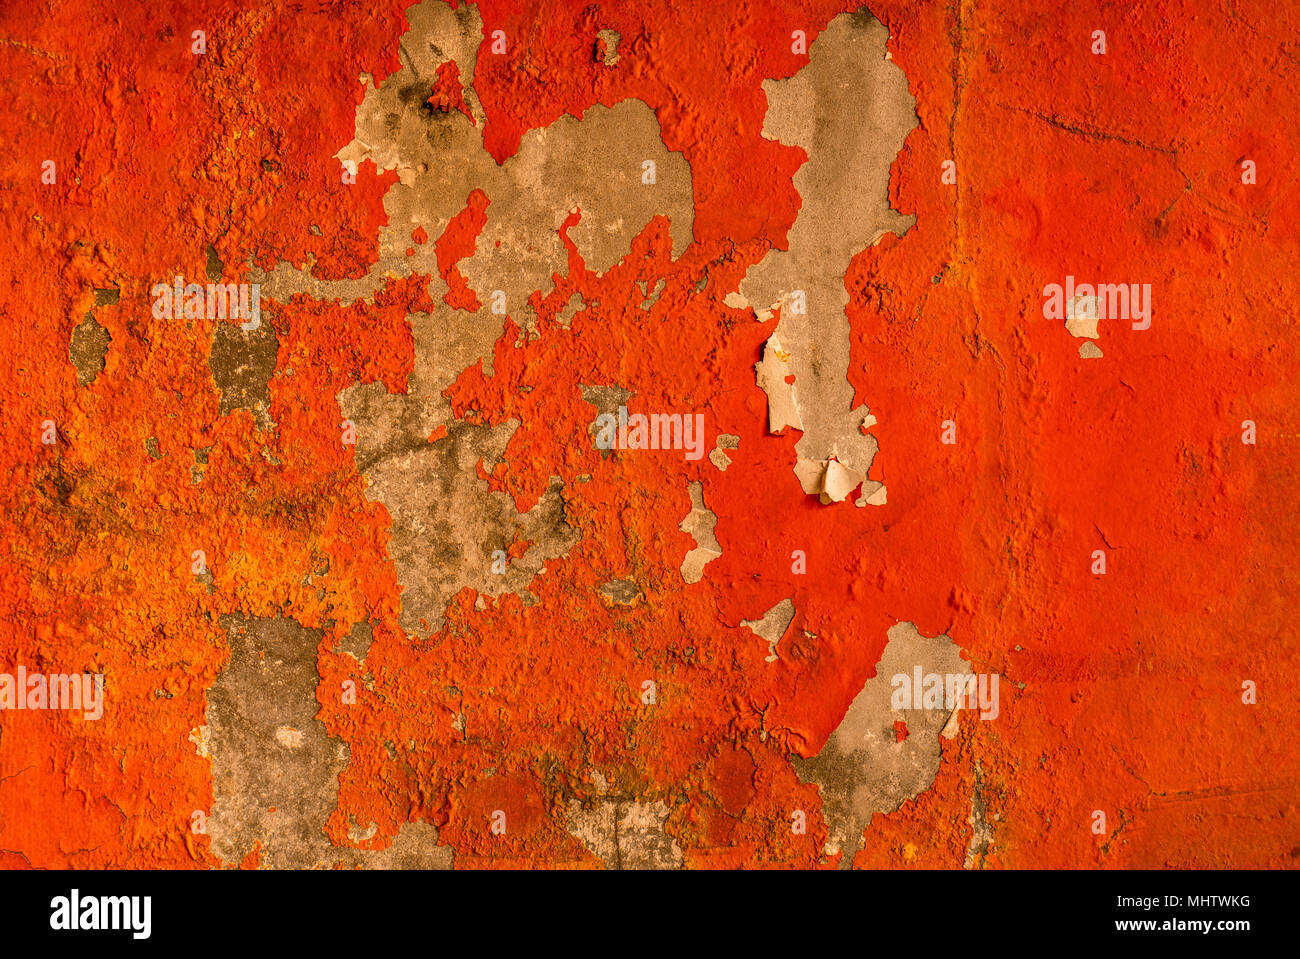 Orange Color Painted On Concrete Wall Are Peeling. Old And Dirty Wall  Texture Background With